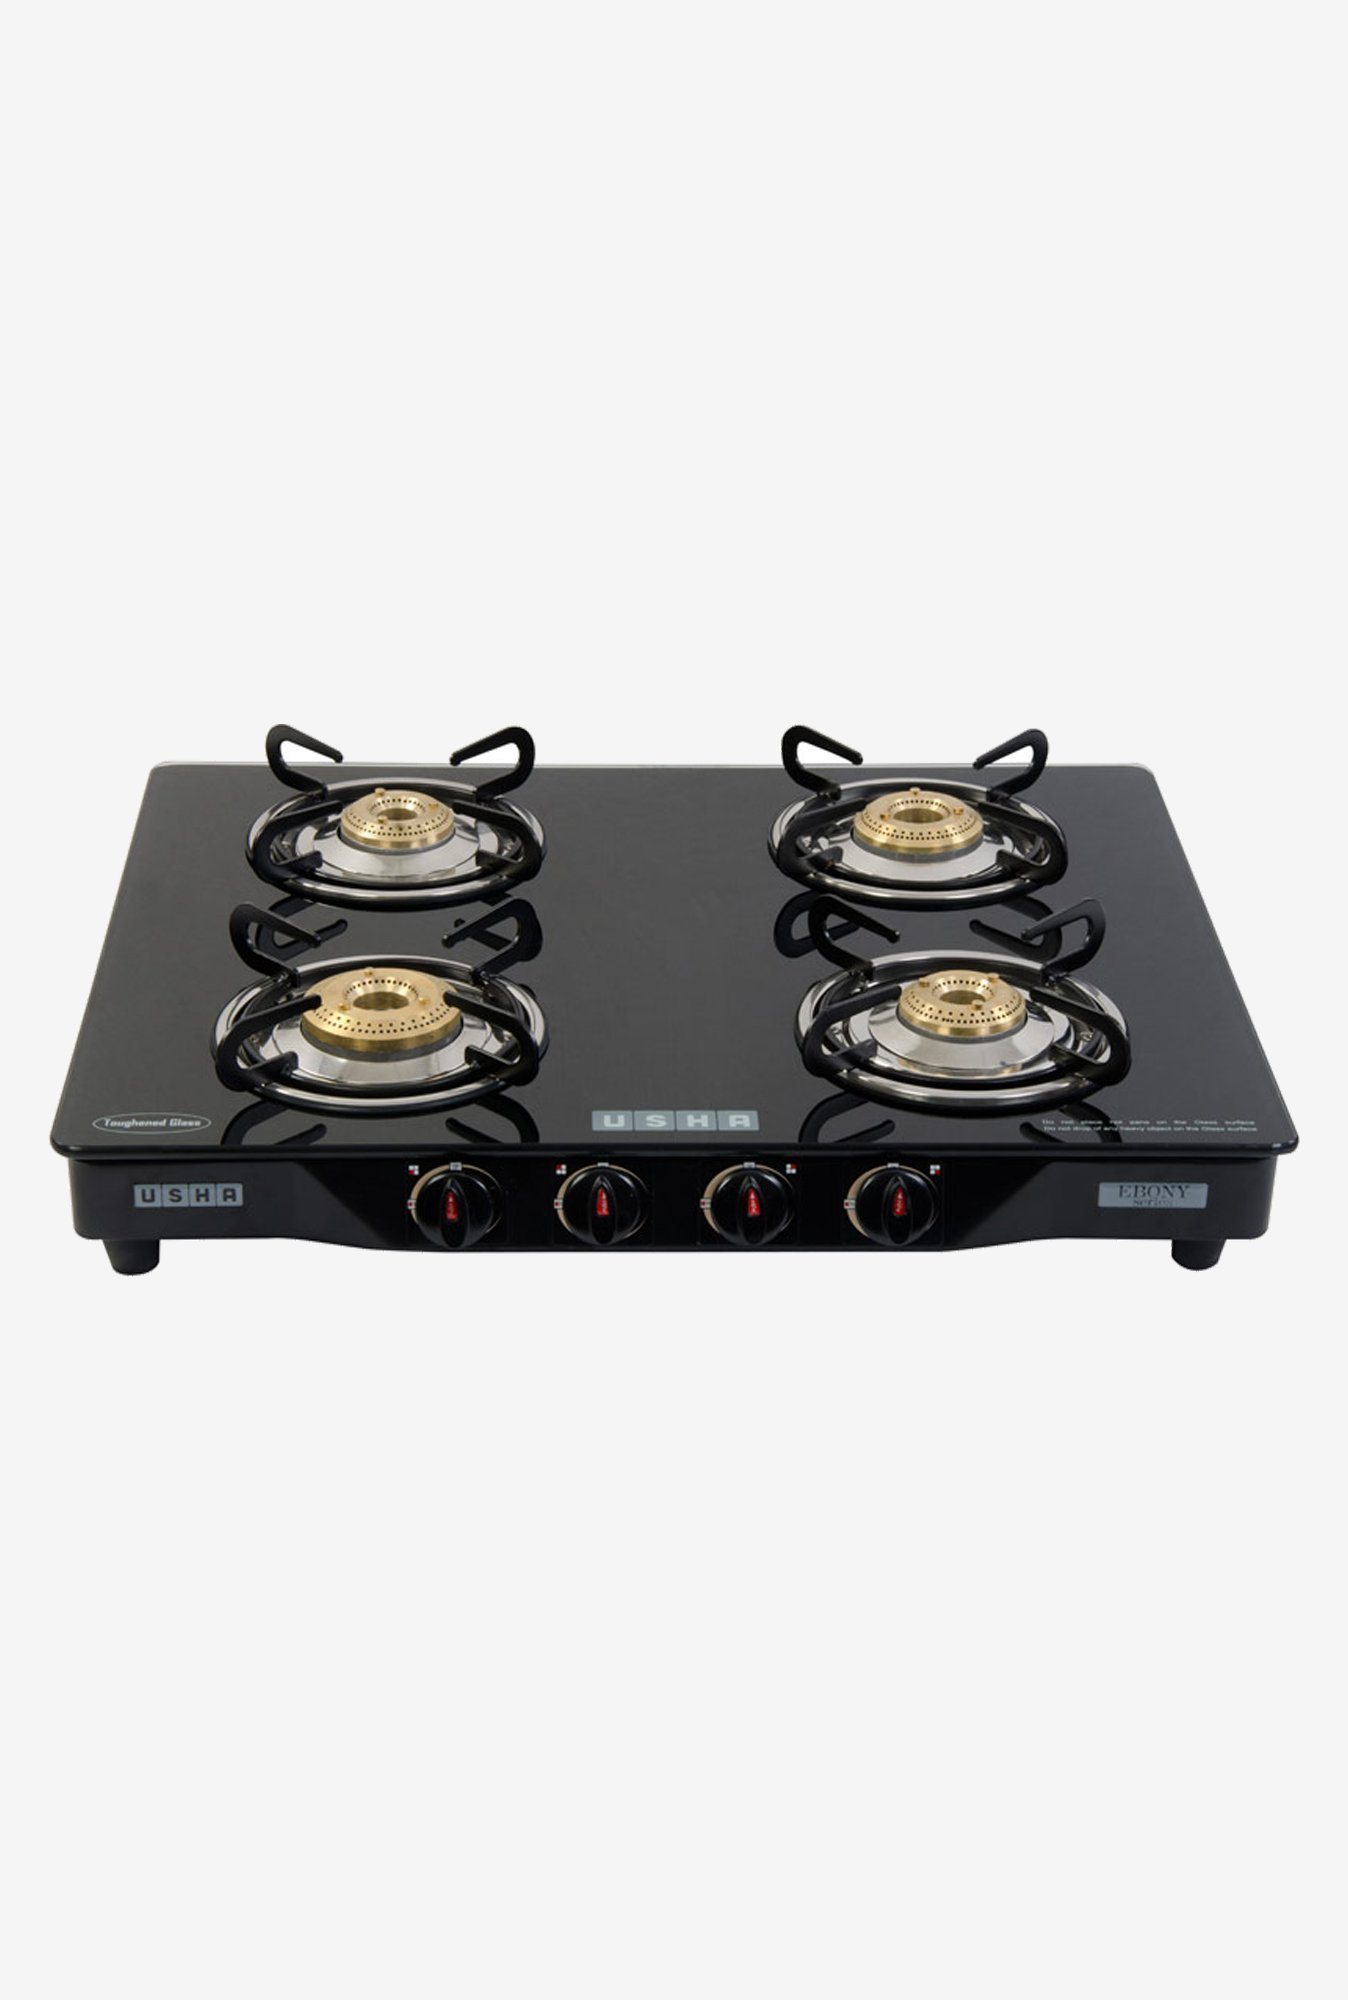 Usha Ebony GS4001 4 Burners Gas Cooktop Black